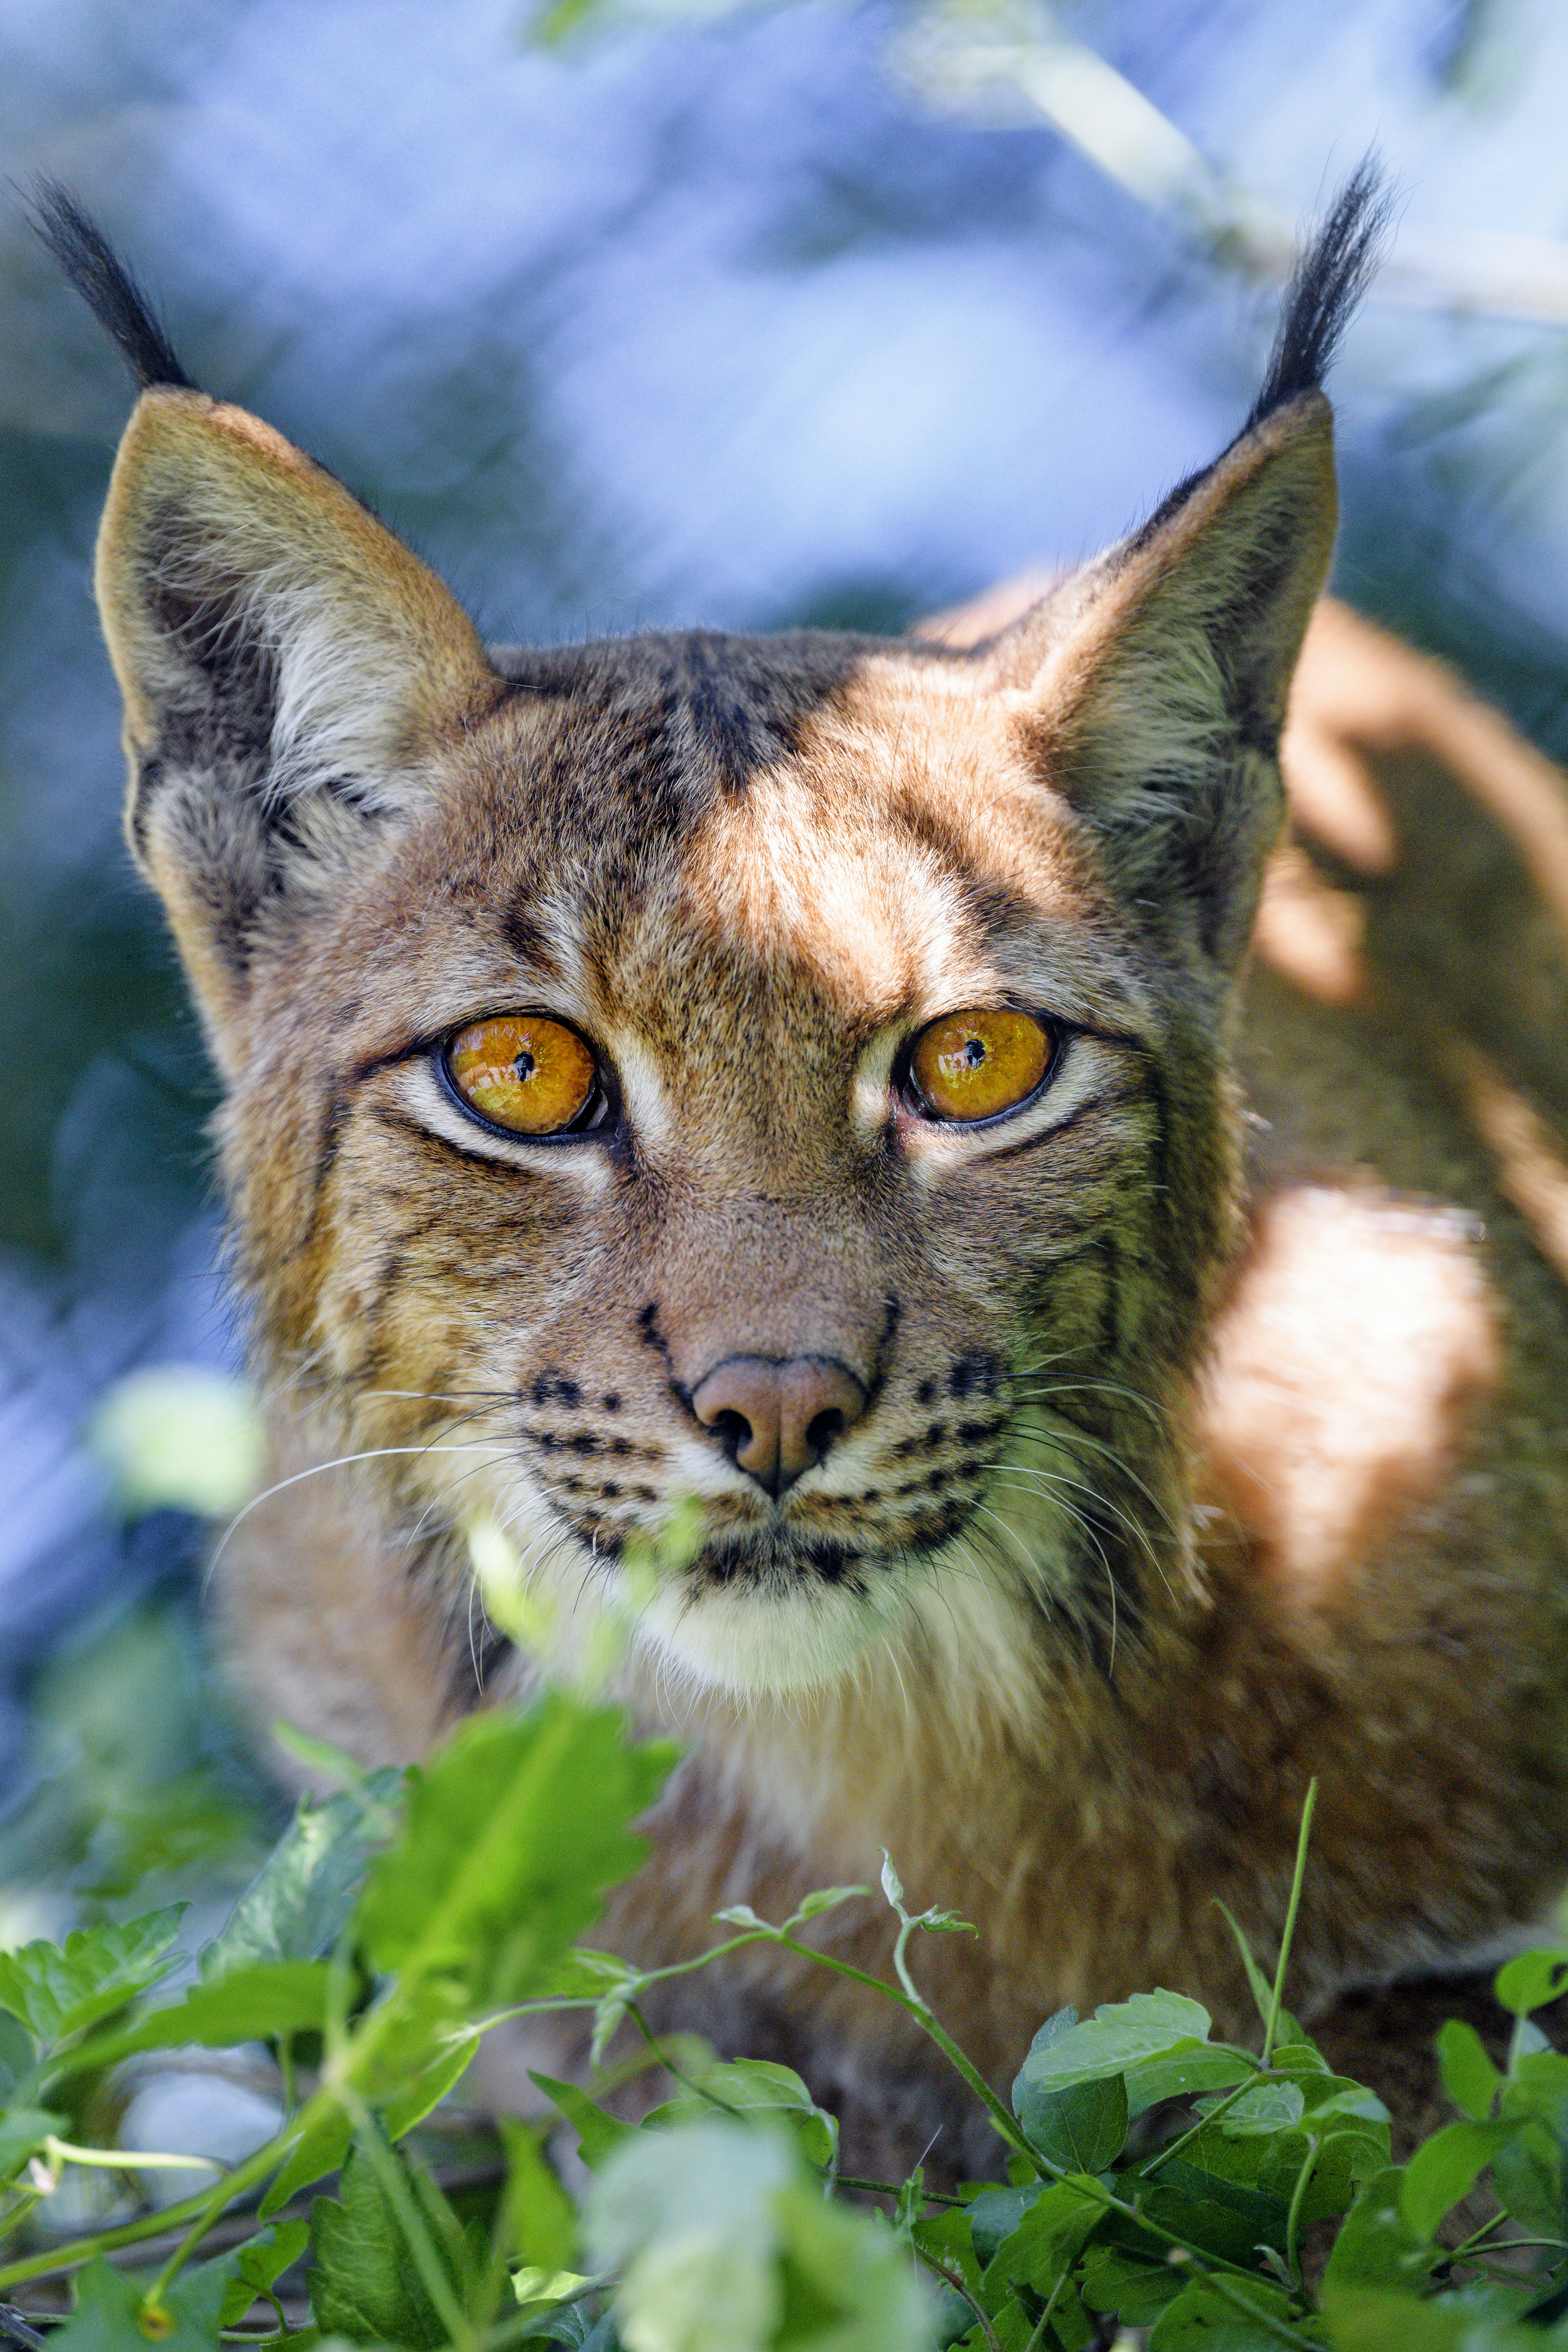 60732 download wallpaper Animals, Iris, Big Cat, Sight, Opinion, Animal, Muzzle, Plant screensavers and pictures for free